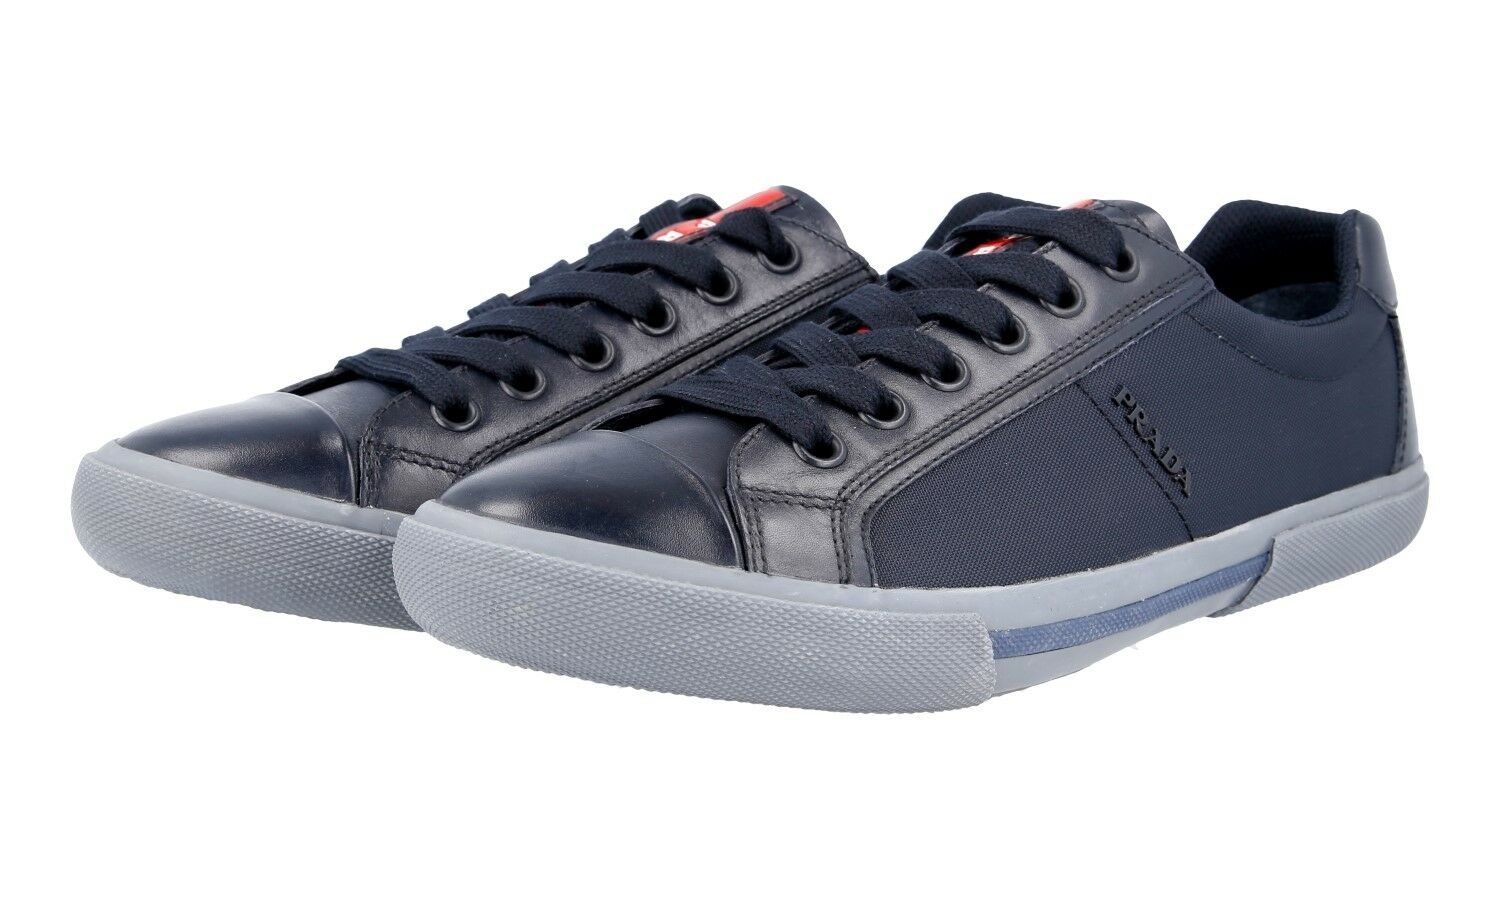 AUTHENTIC LUXURY PRADA SNEAKERS SHOES 4E3028 blueE NEW 8 42 42,5